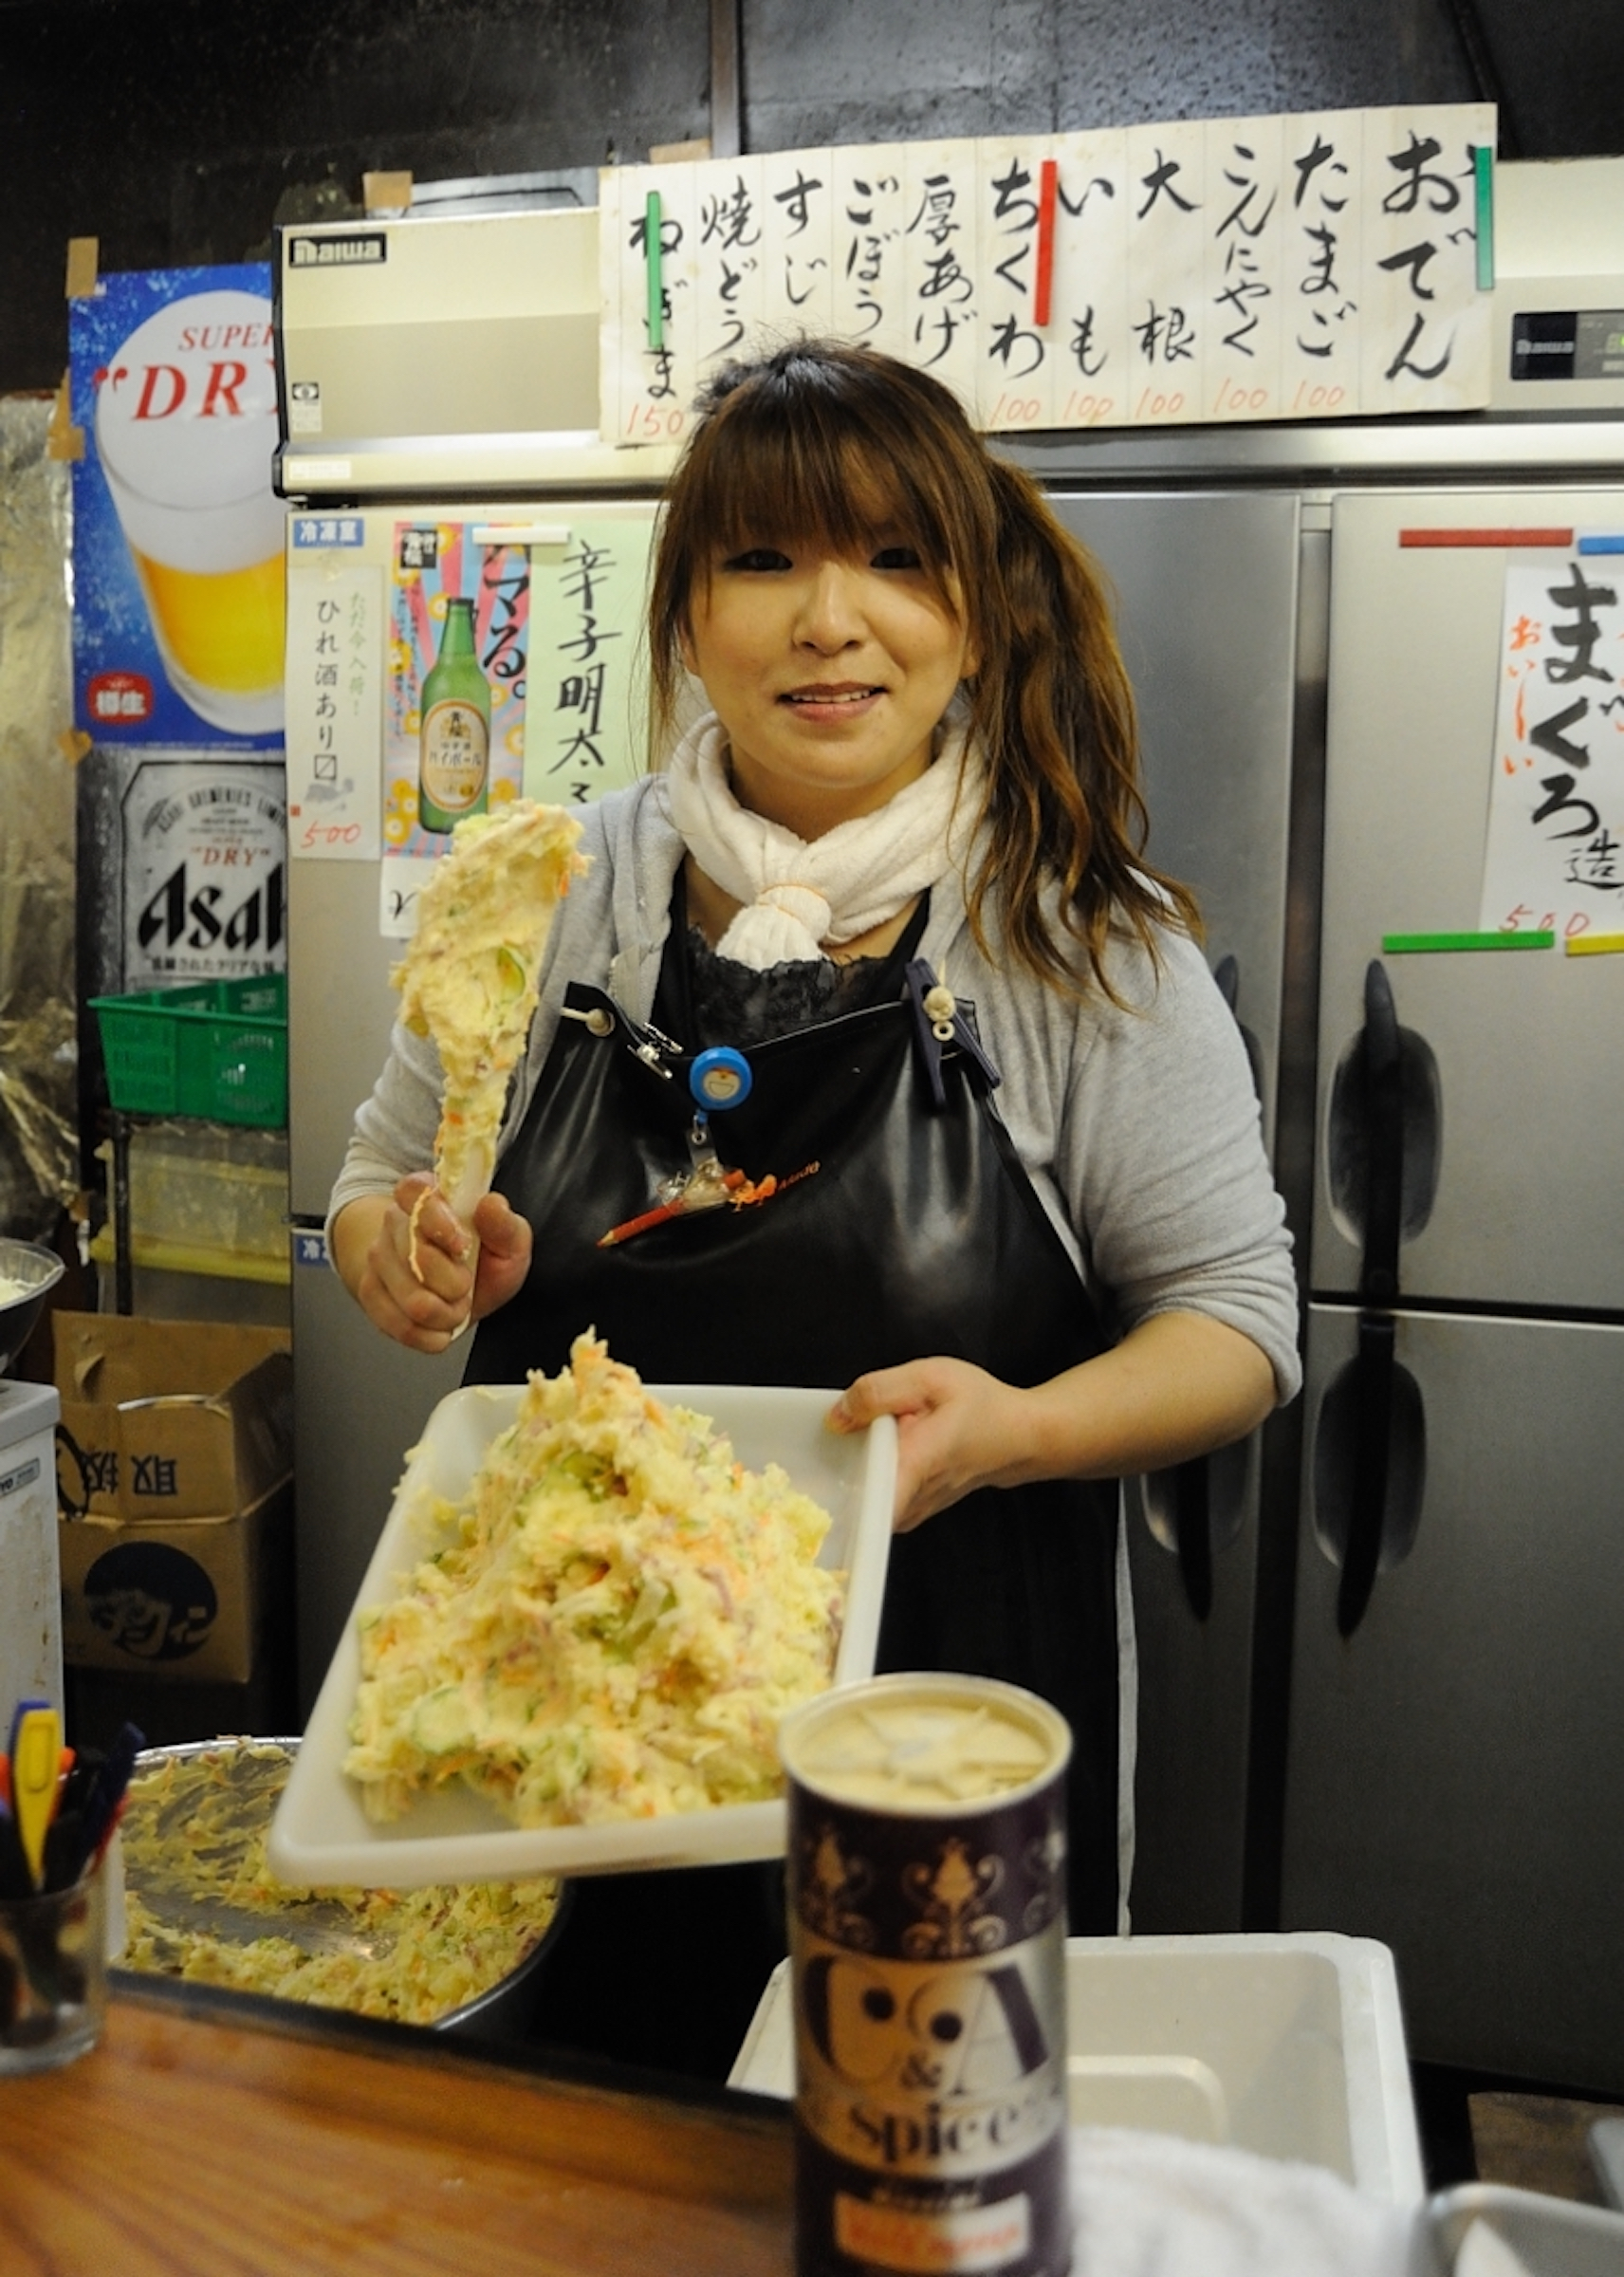 Photograph of a woman holding a tray of food